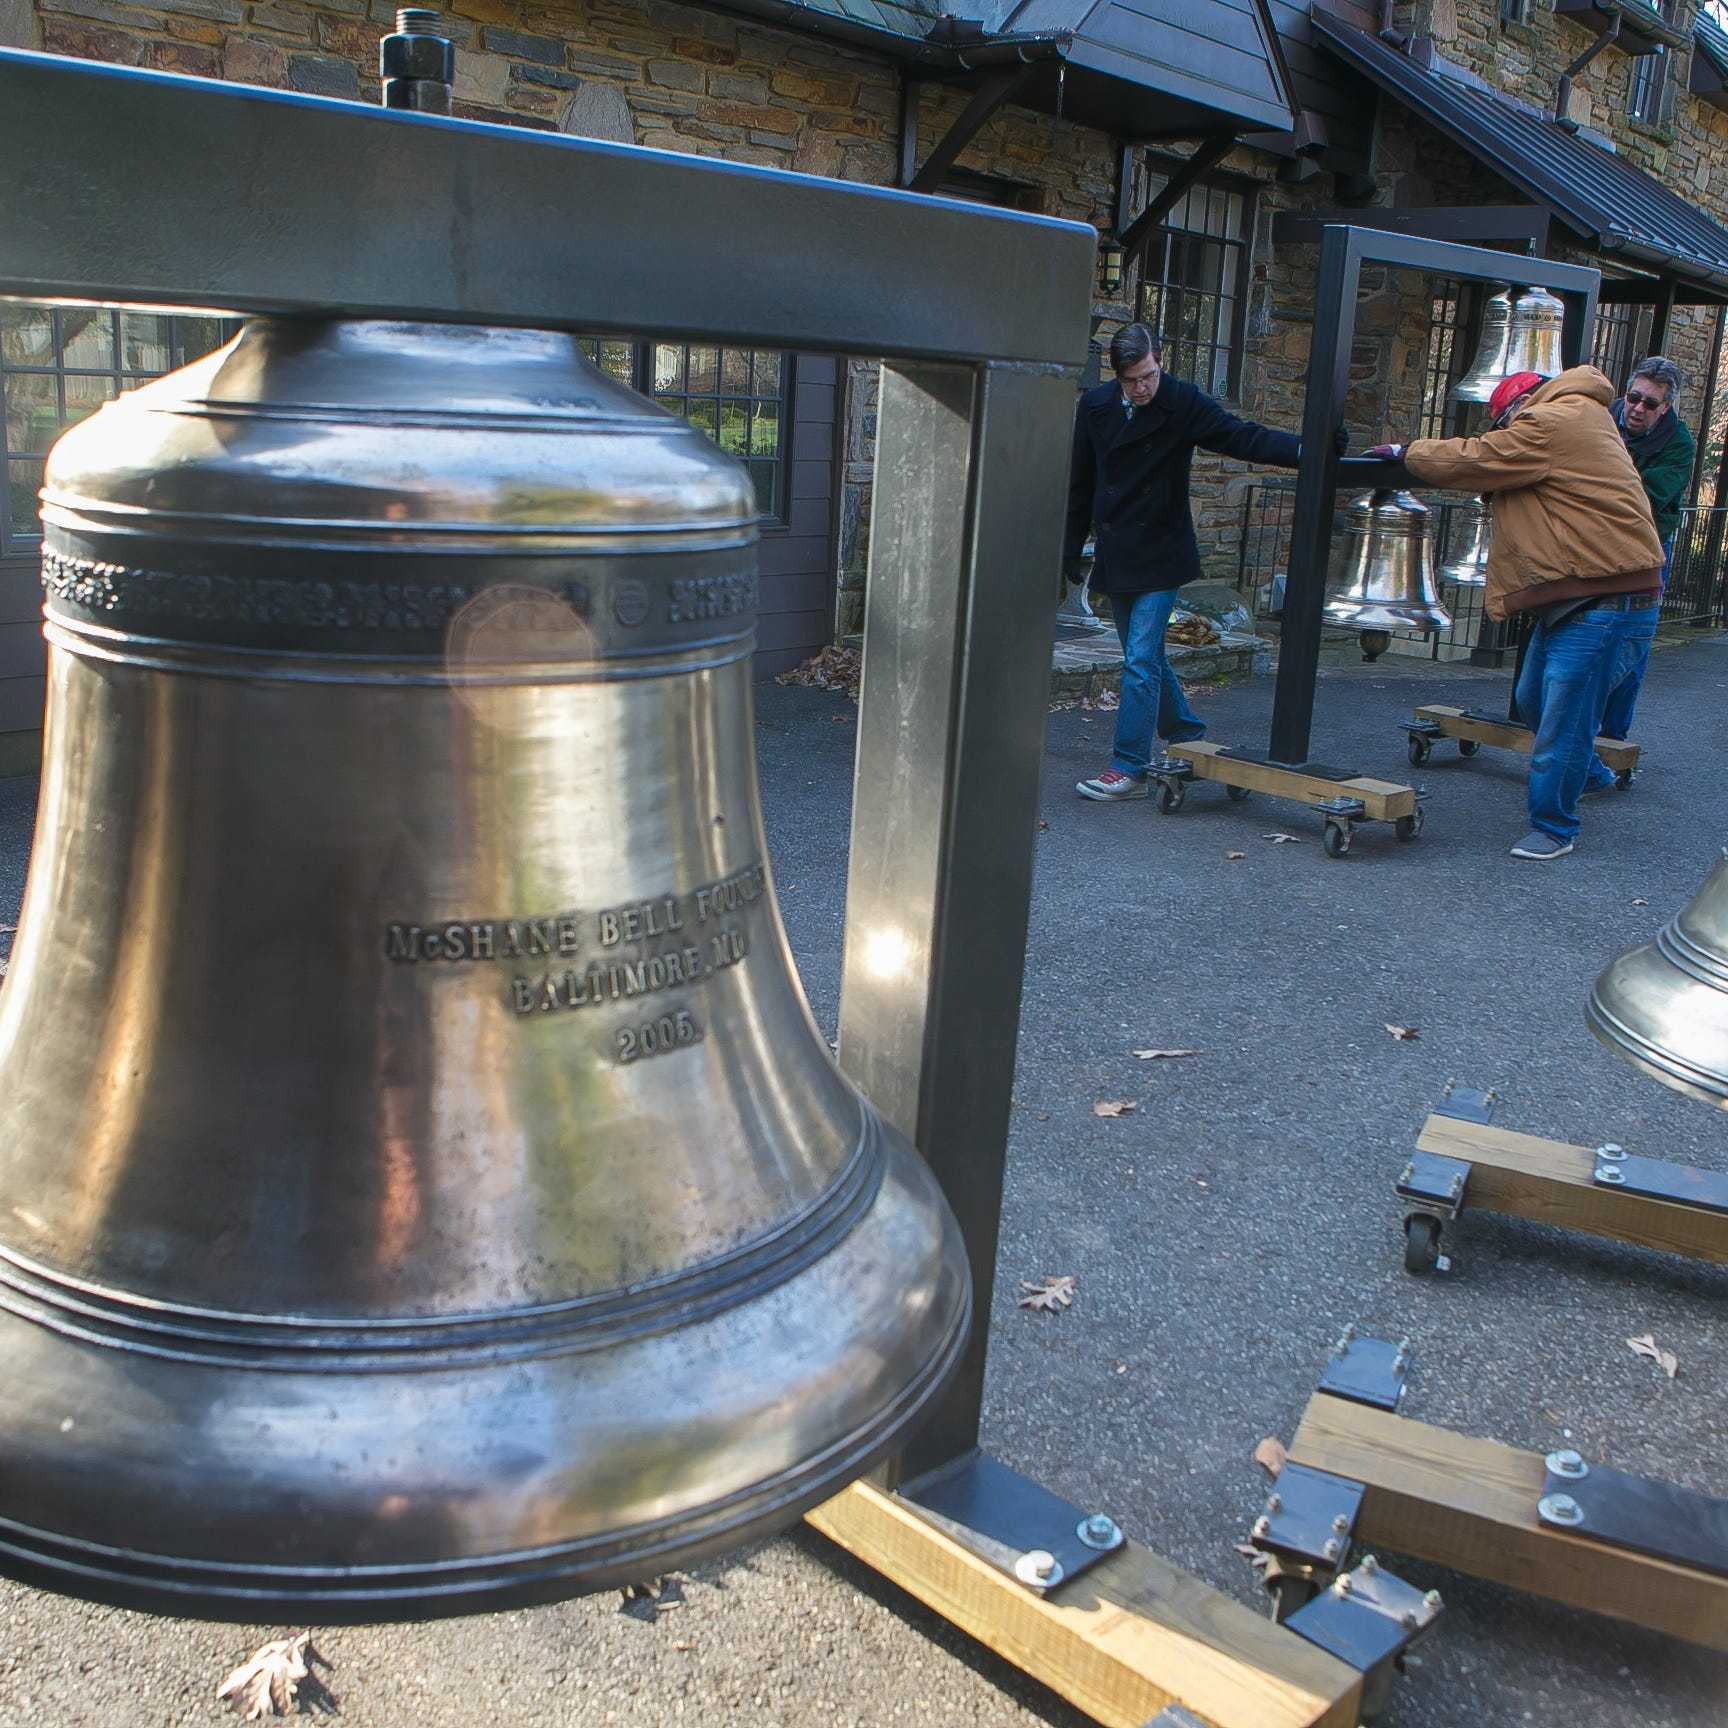 Conductor David Amado's unique way of ringing in holidays: He parked giant bells in garage